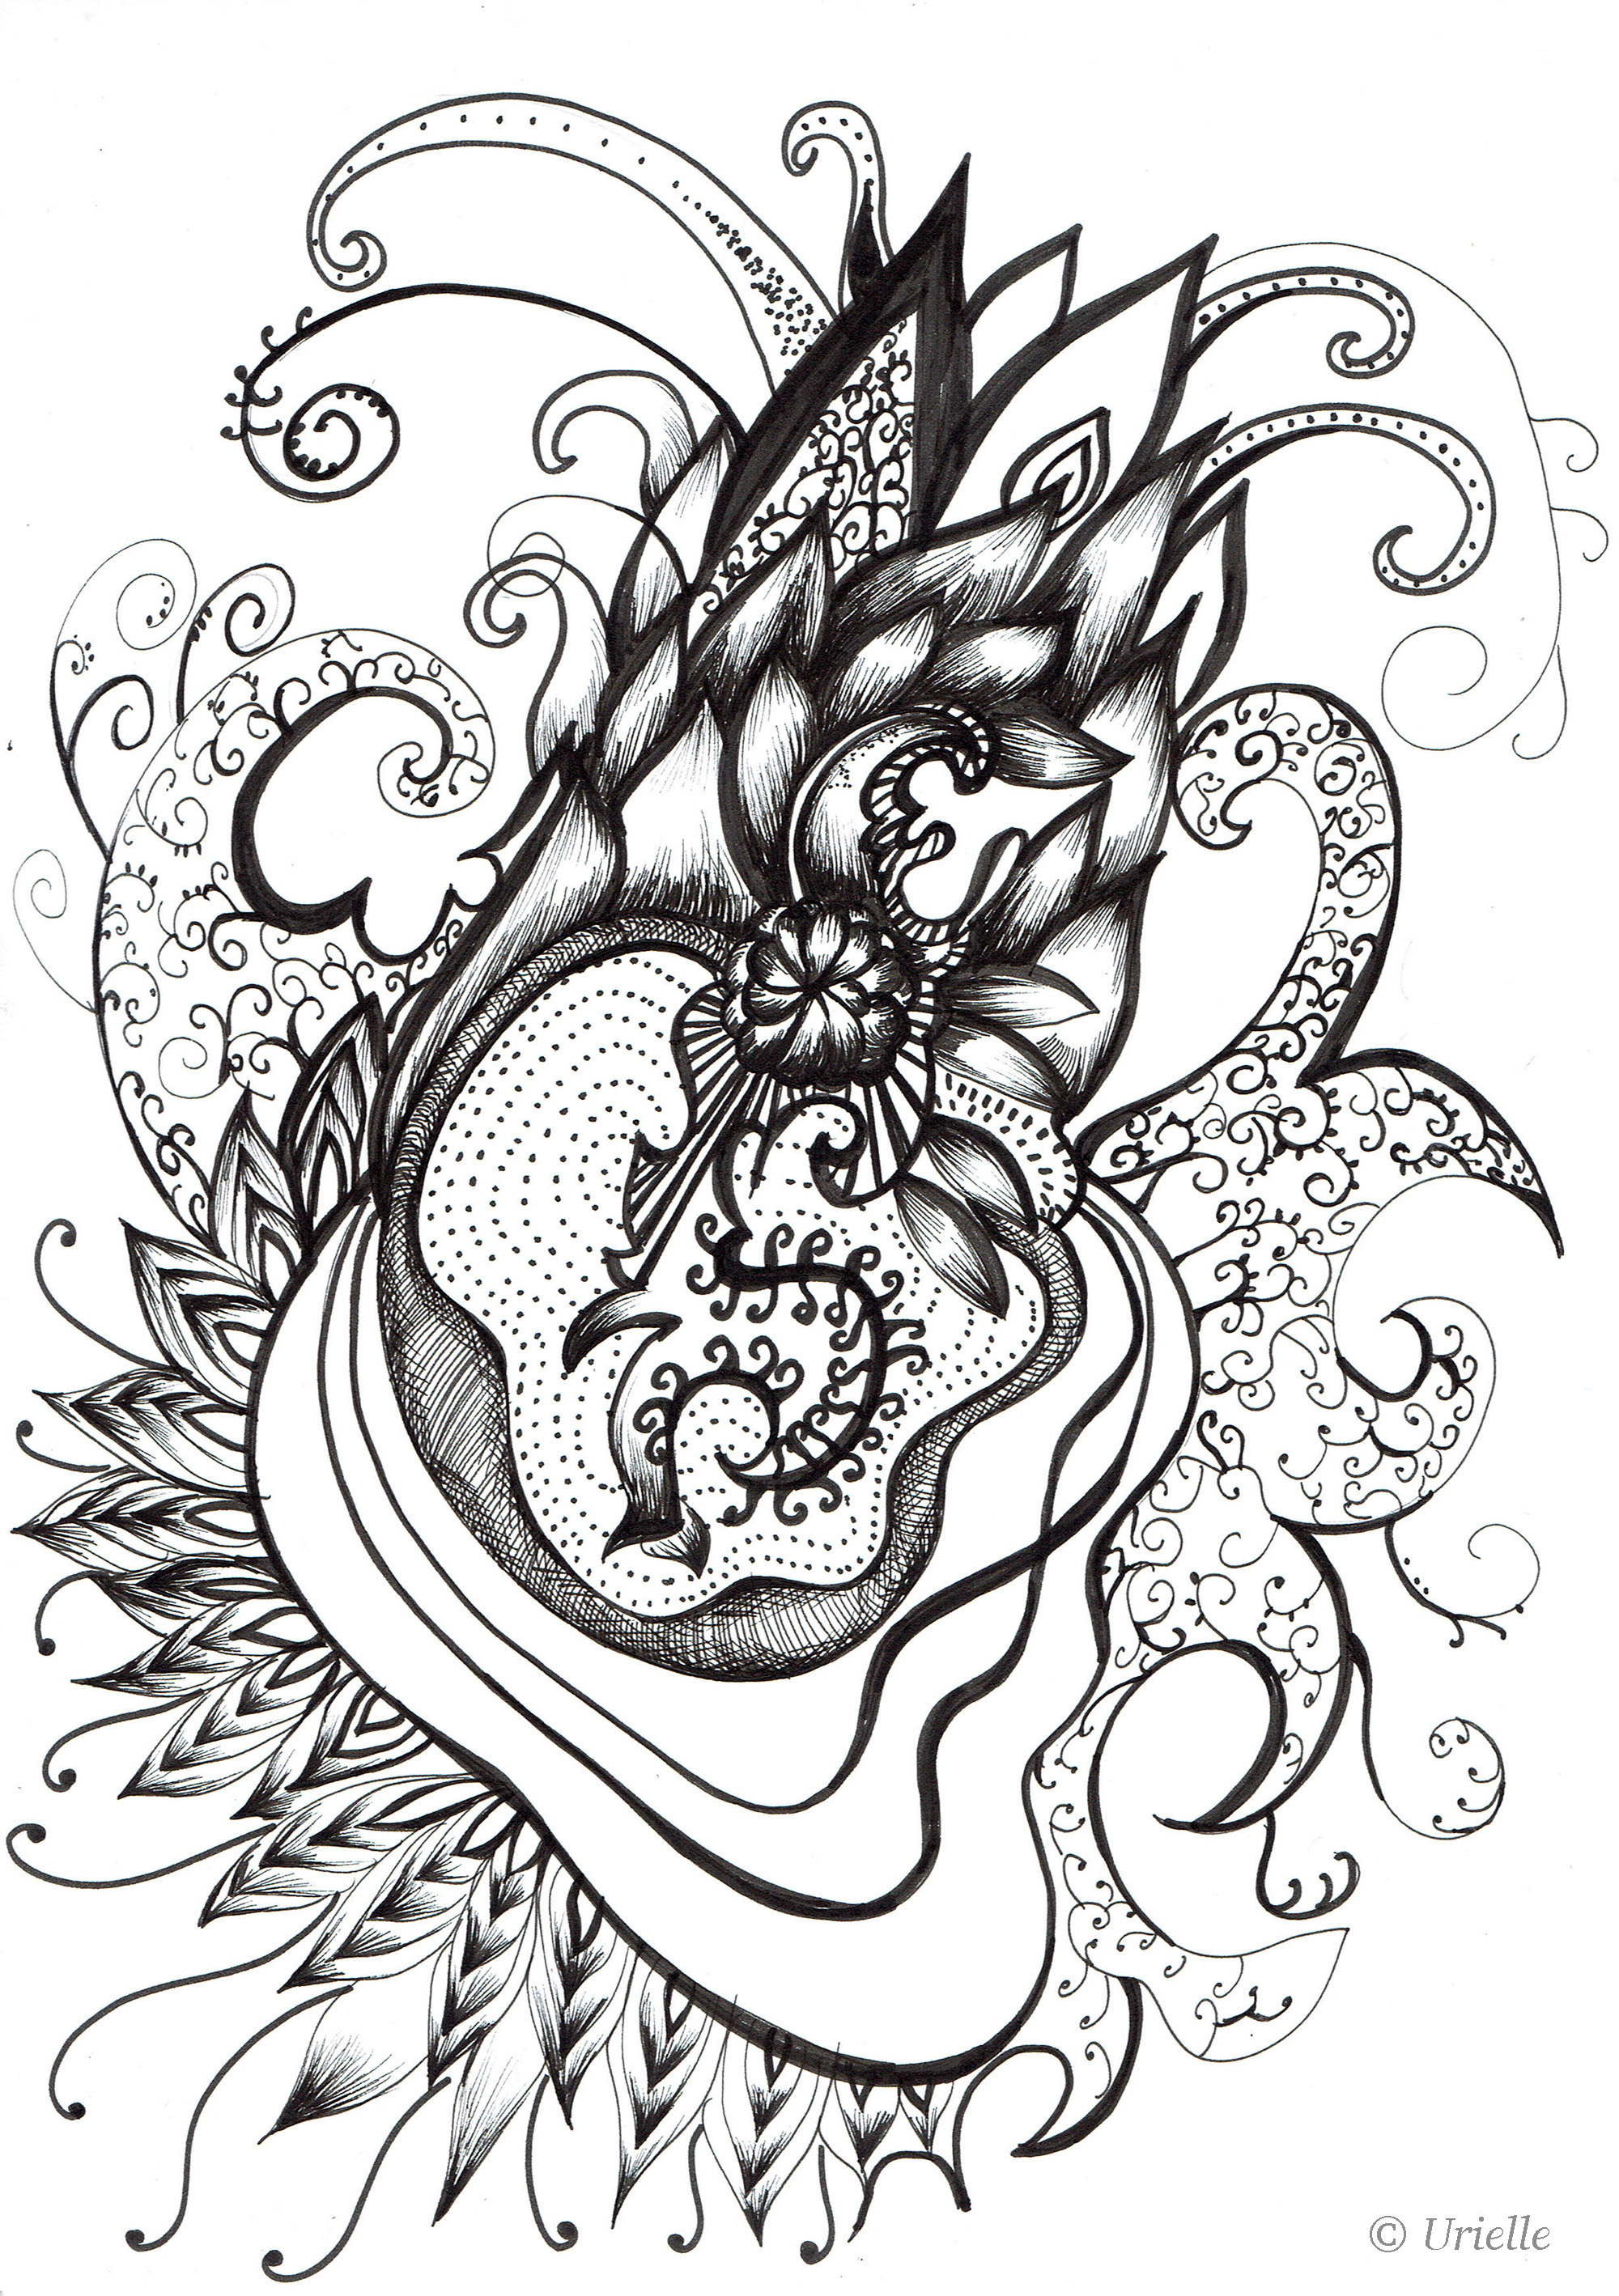 Heart coloring pages adults, love birds coloring pages